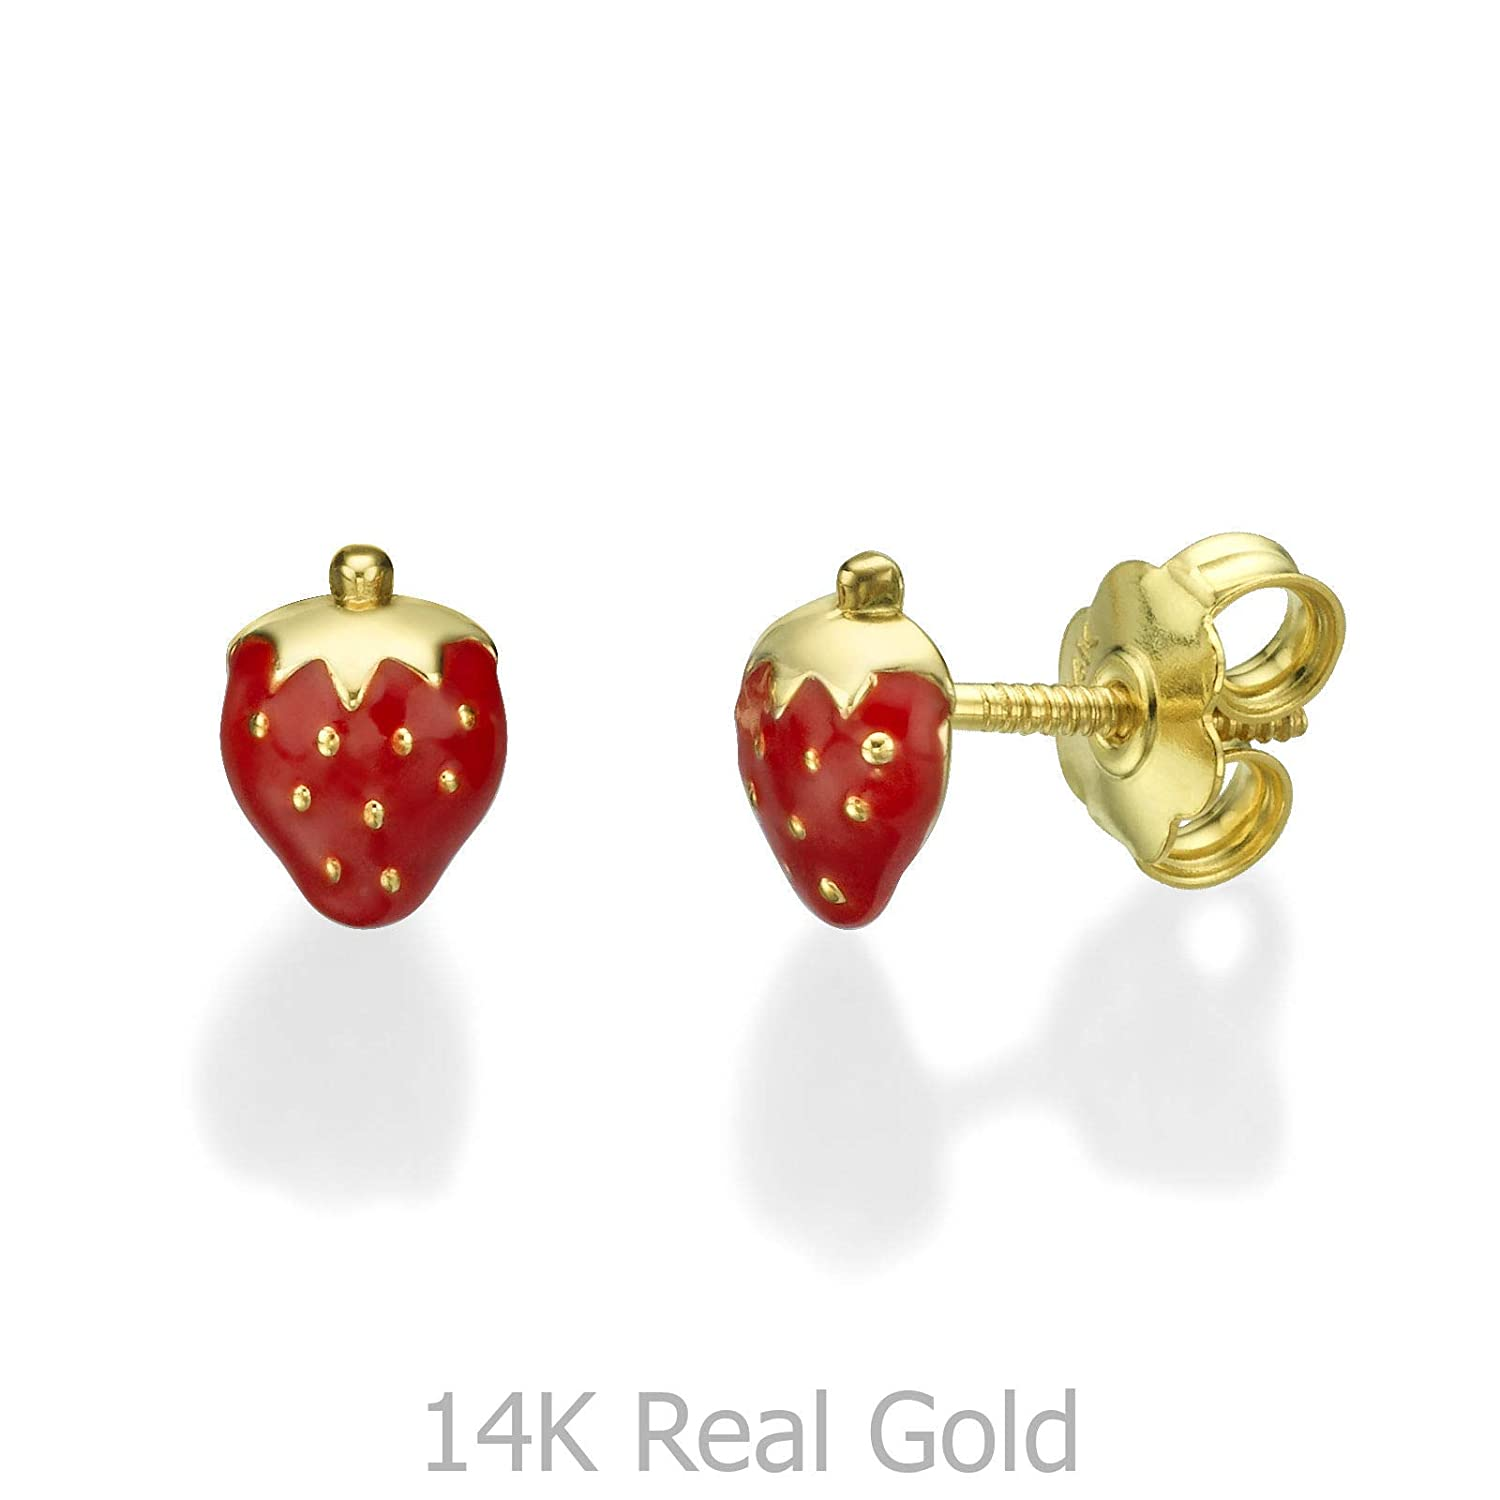 e835f723a Amazon.com: 14K Solid Yellow Gold Enamel Strawberry Screw Back Stud Earrings  for Girls Children Gift Kids: Jewelry